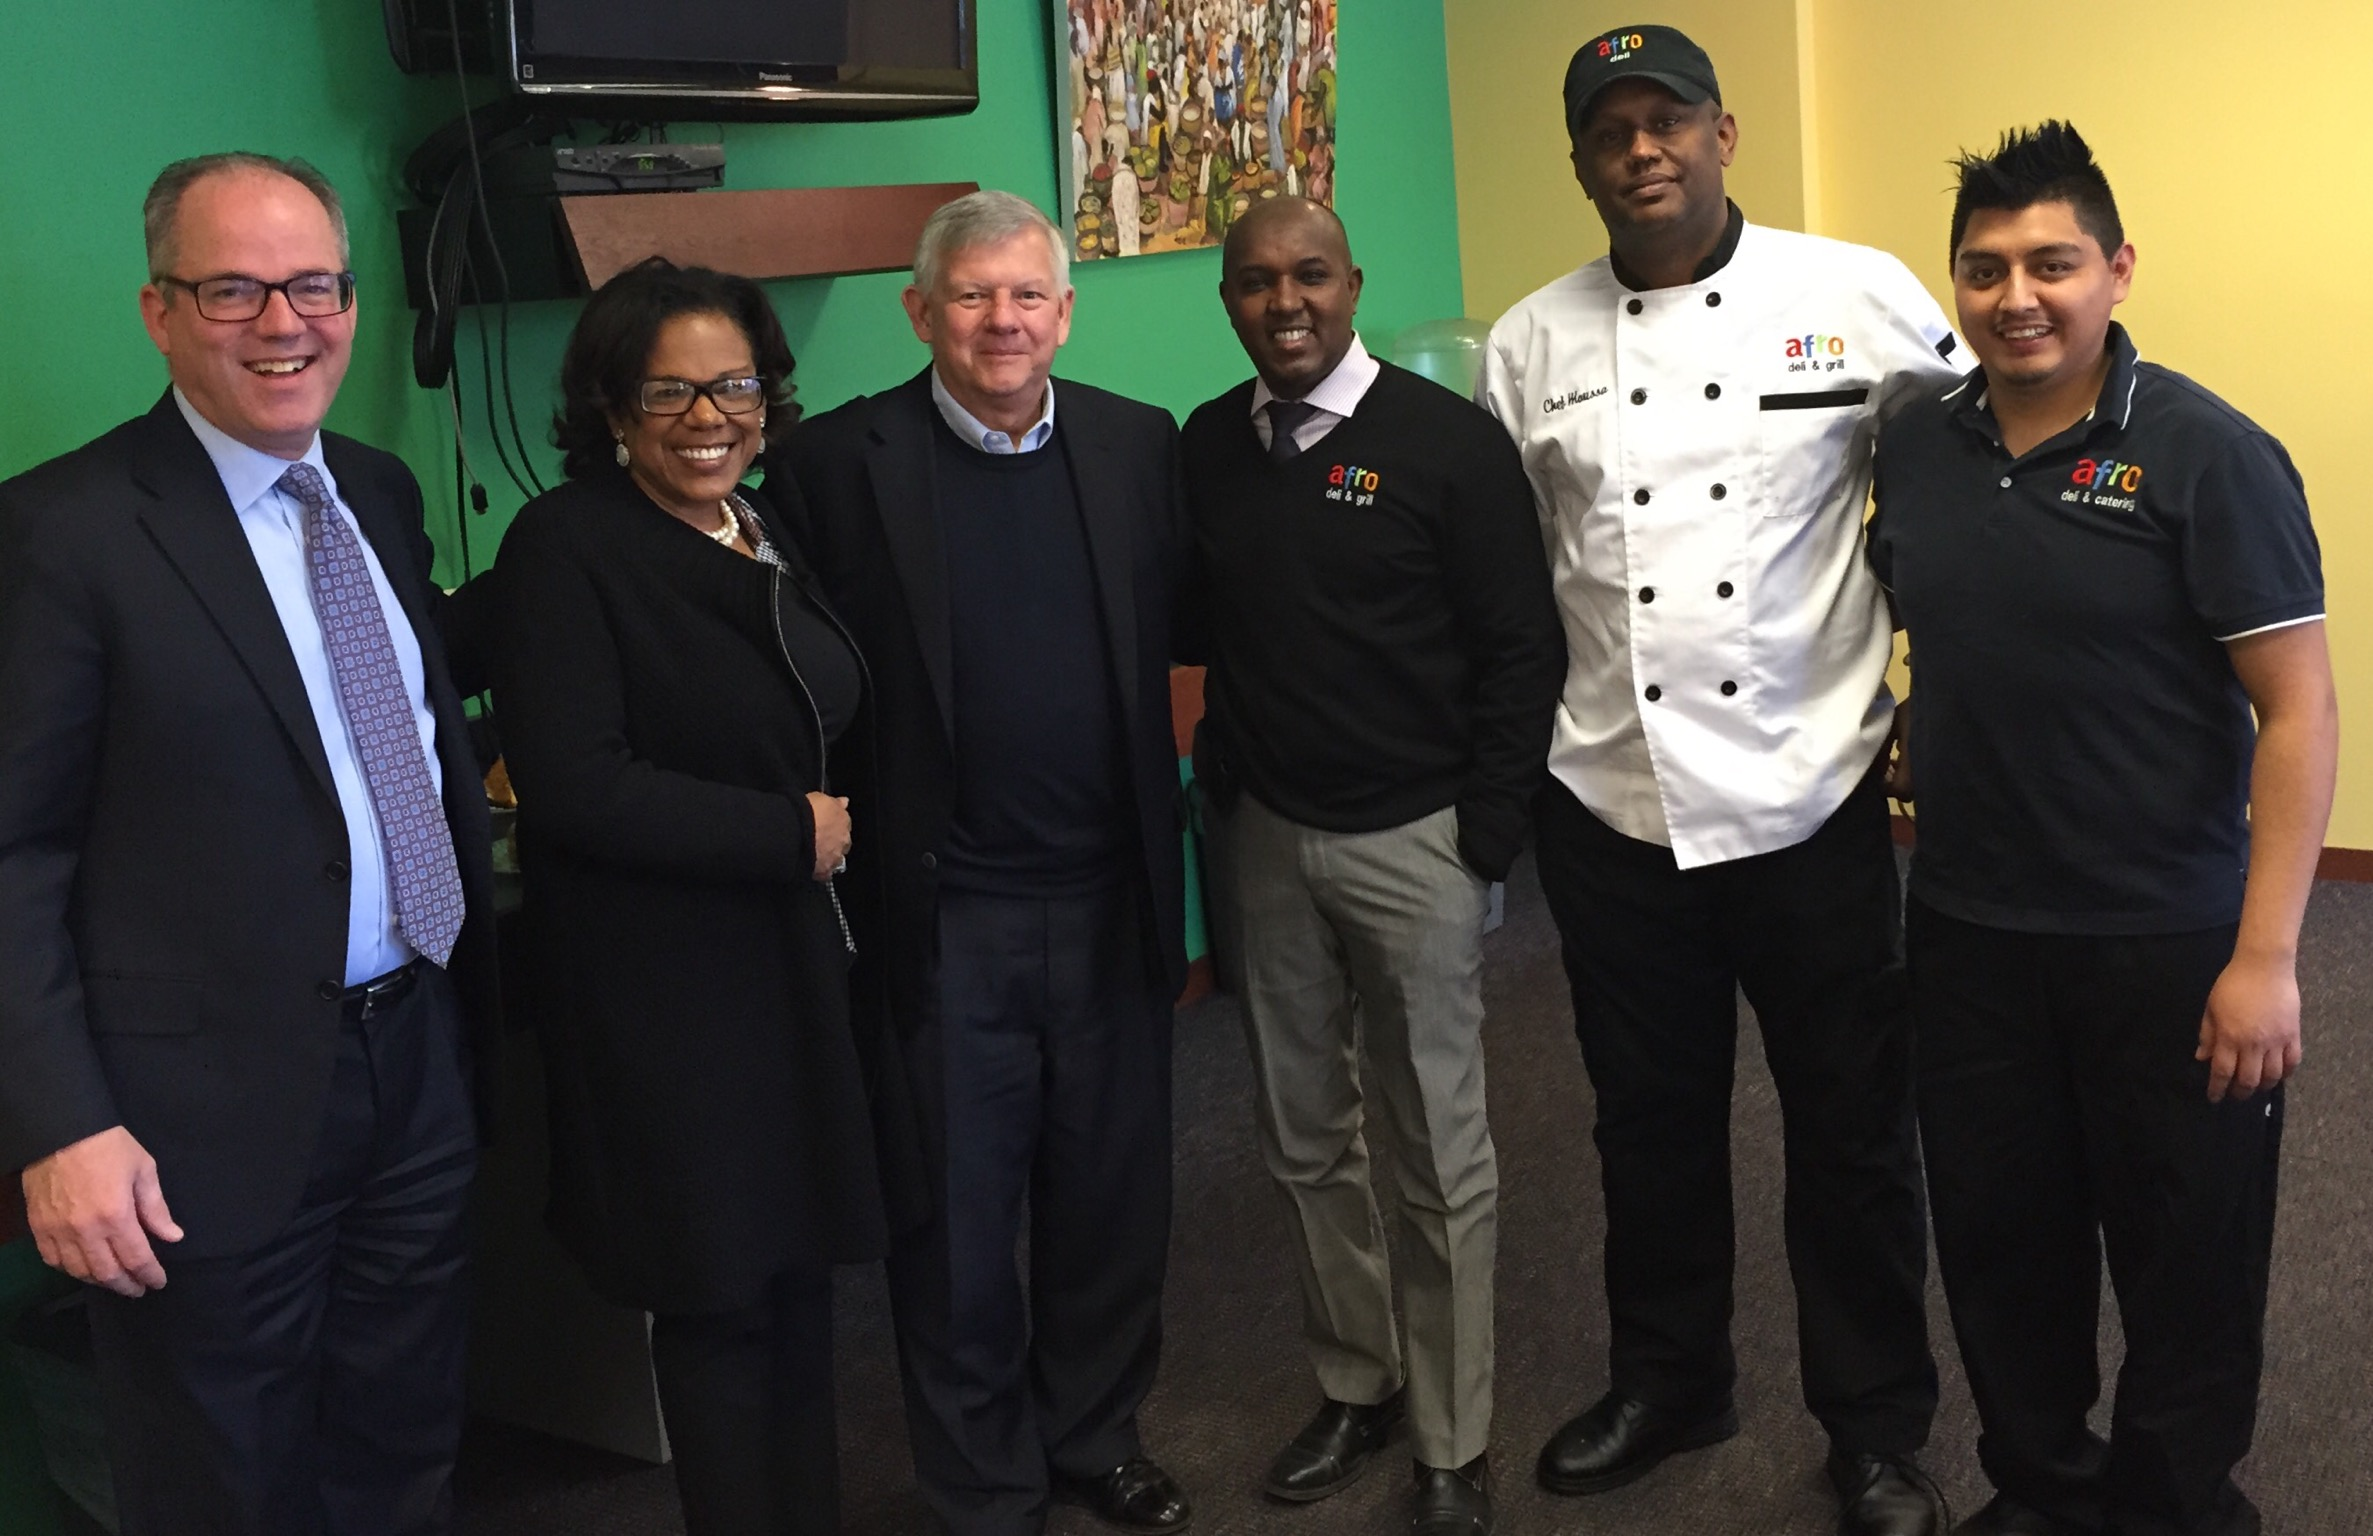 Afro Deli and the Hudson Group